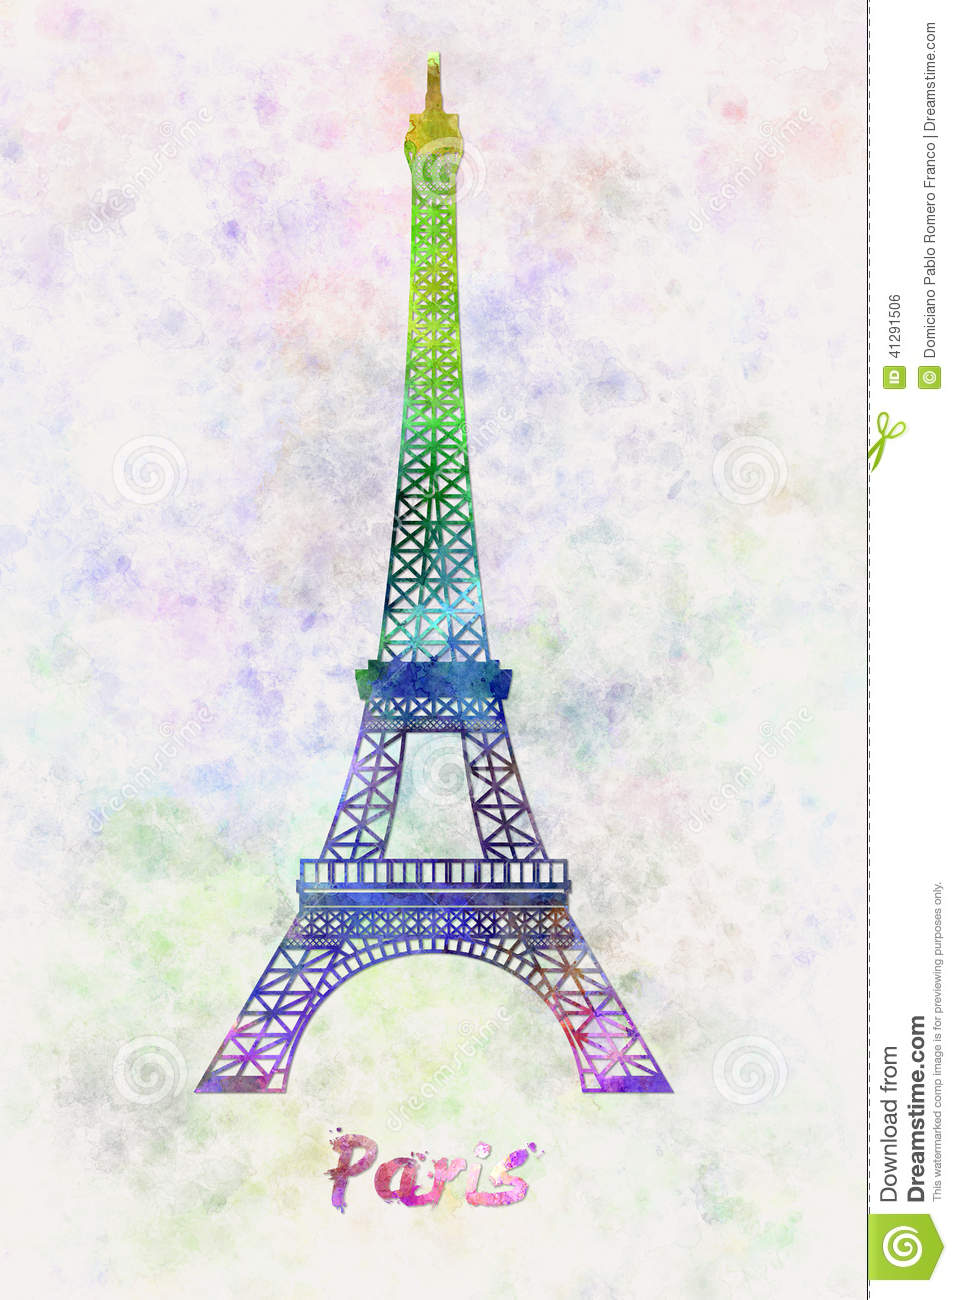 Exceptionnel Paris Landmark Tour Eiffel In Watercolor Stock Illustration  BG13